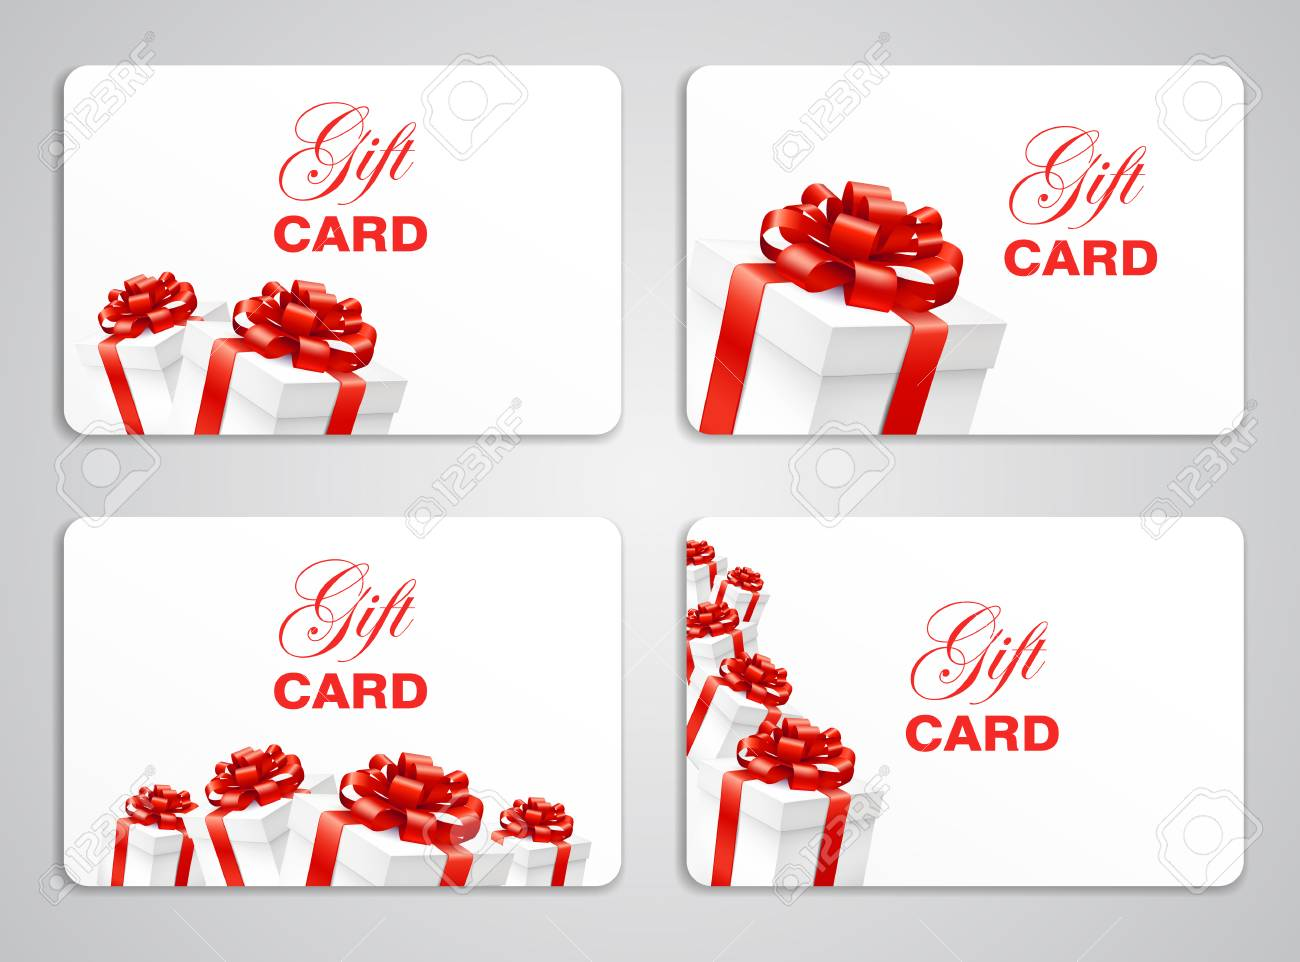 Gift Card With Present Boxes With Red Bow Holiday Cards Template